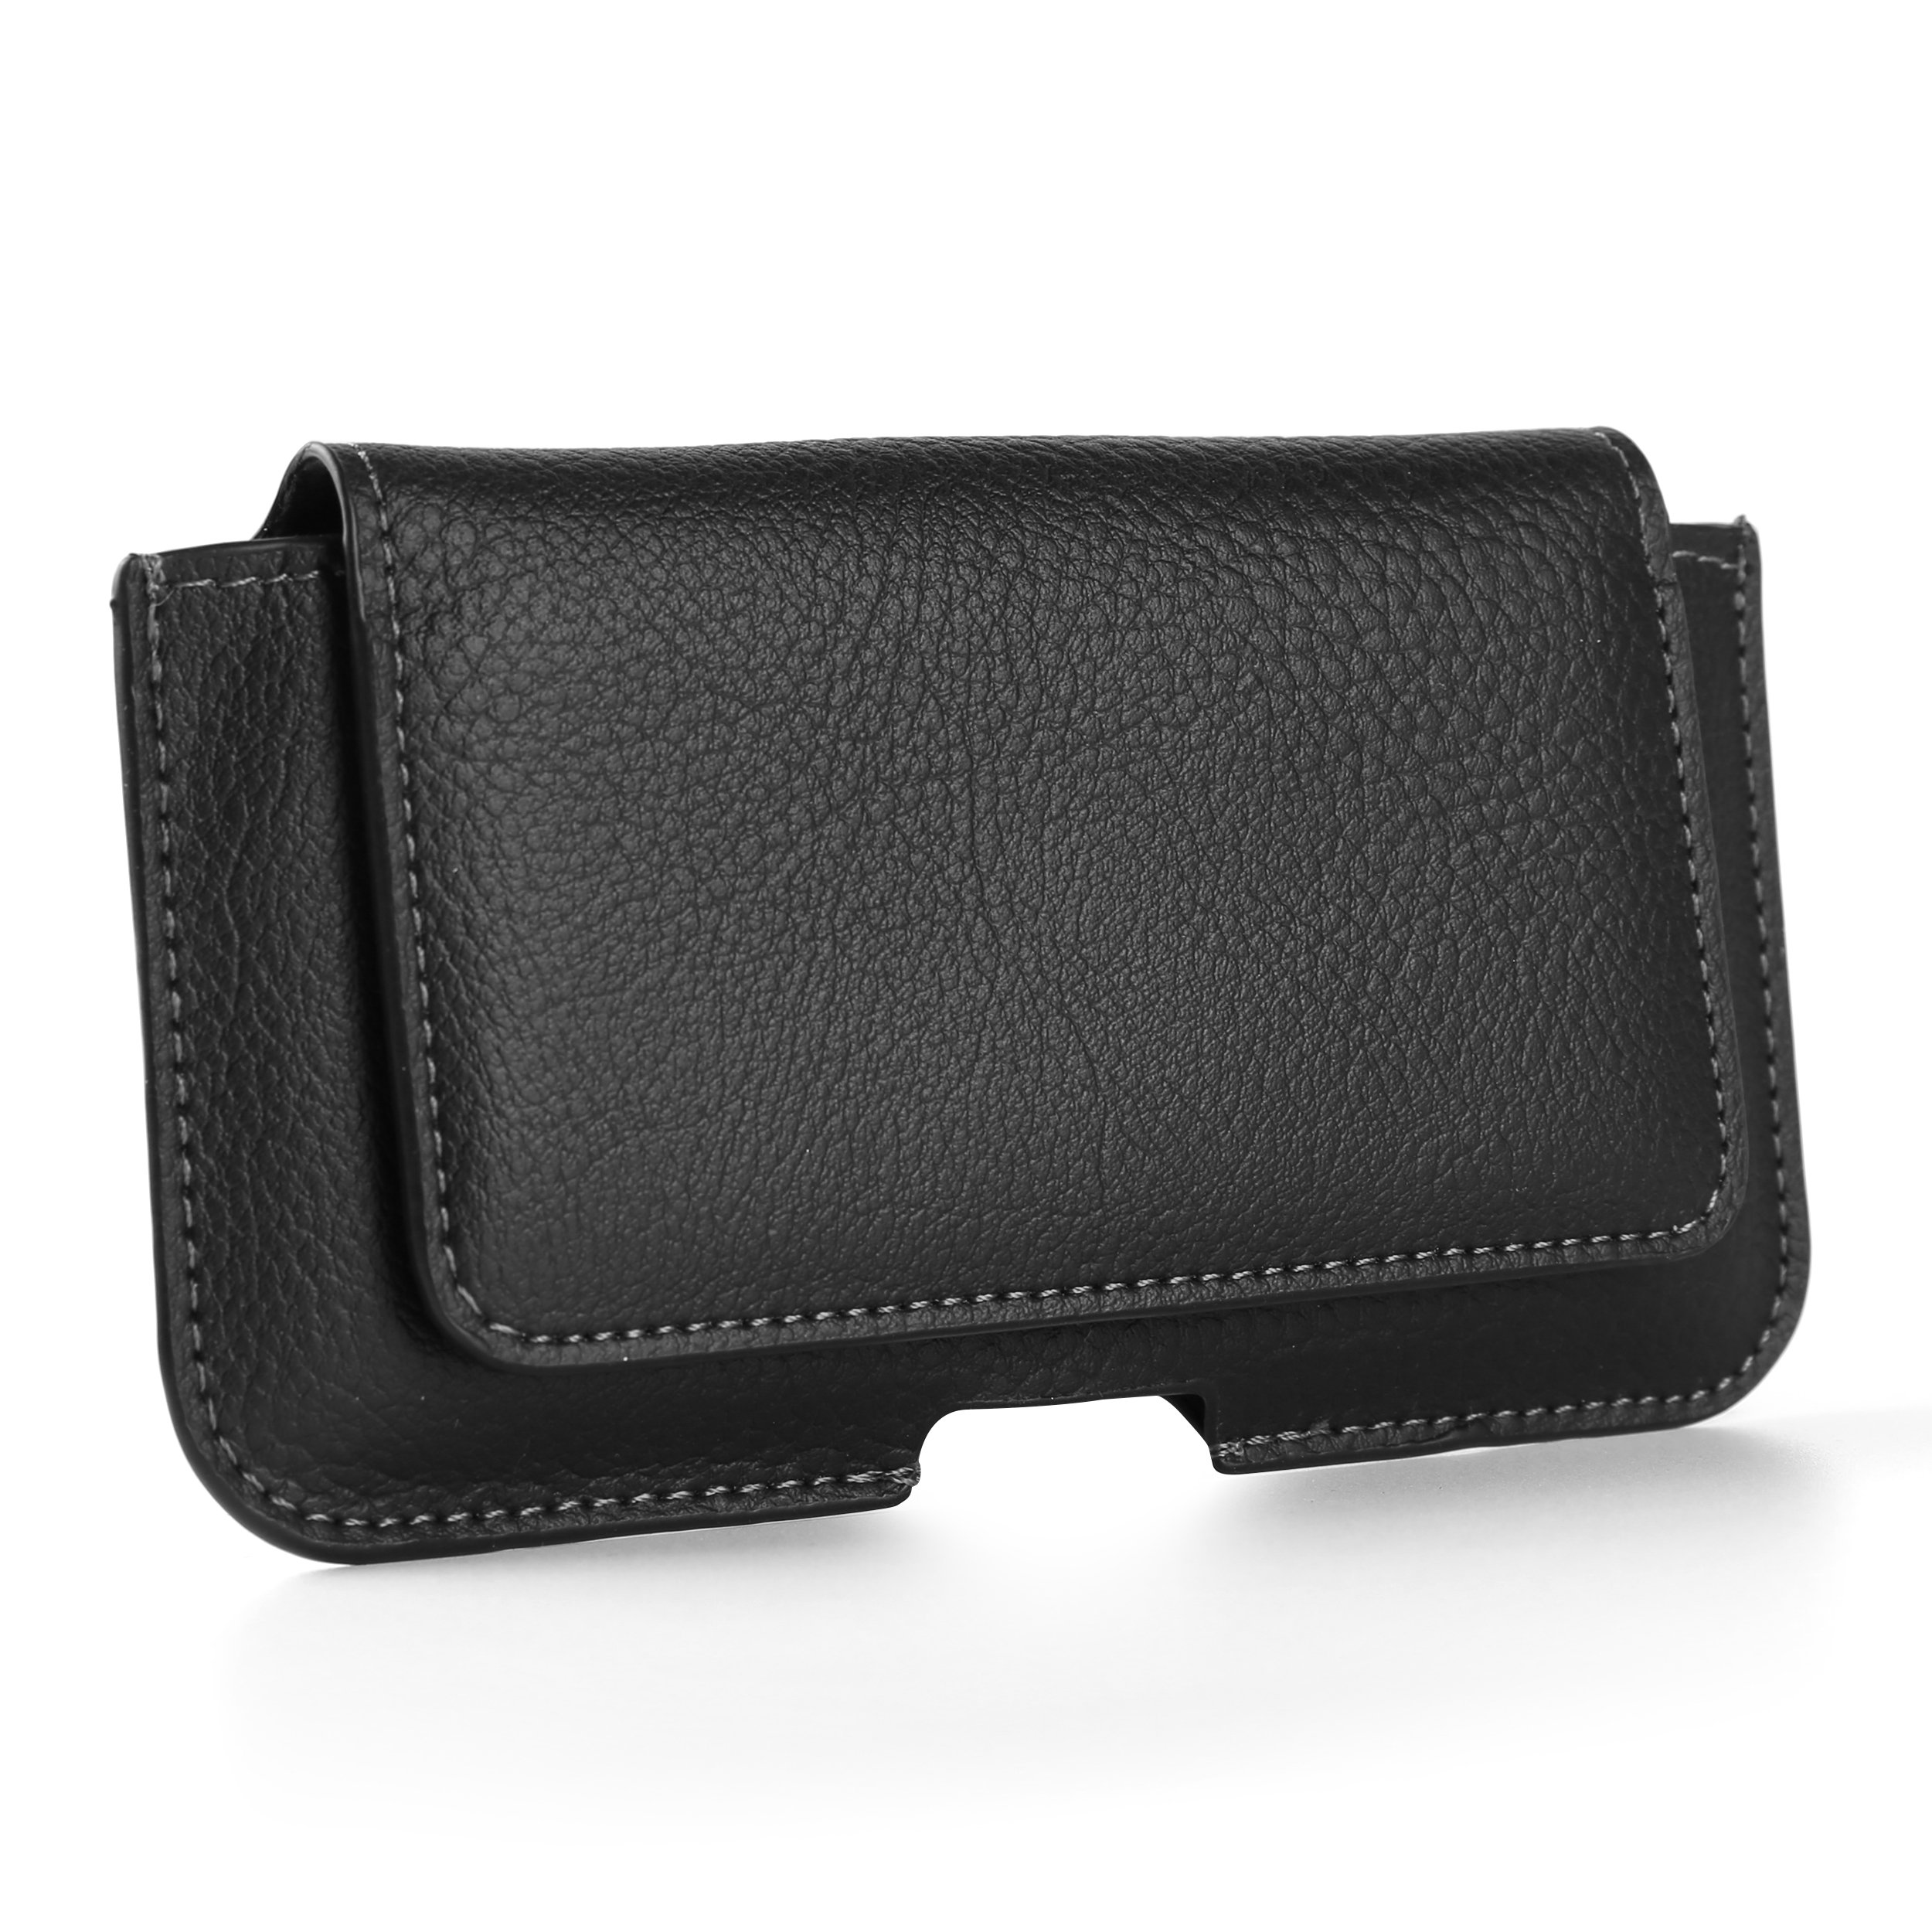 Universal Premium PU Leather Wallet design horizontal Pouch Case Cover Holster with Card Slot and Magnetic Closure & Belt Loop for Samsung Galaxy S7 / S6 Fit up to 5.1 Inch Ios Android Windows Smart Phone (Black)